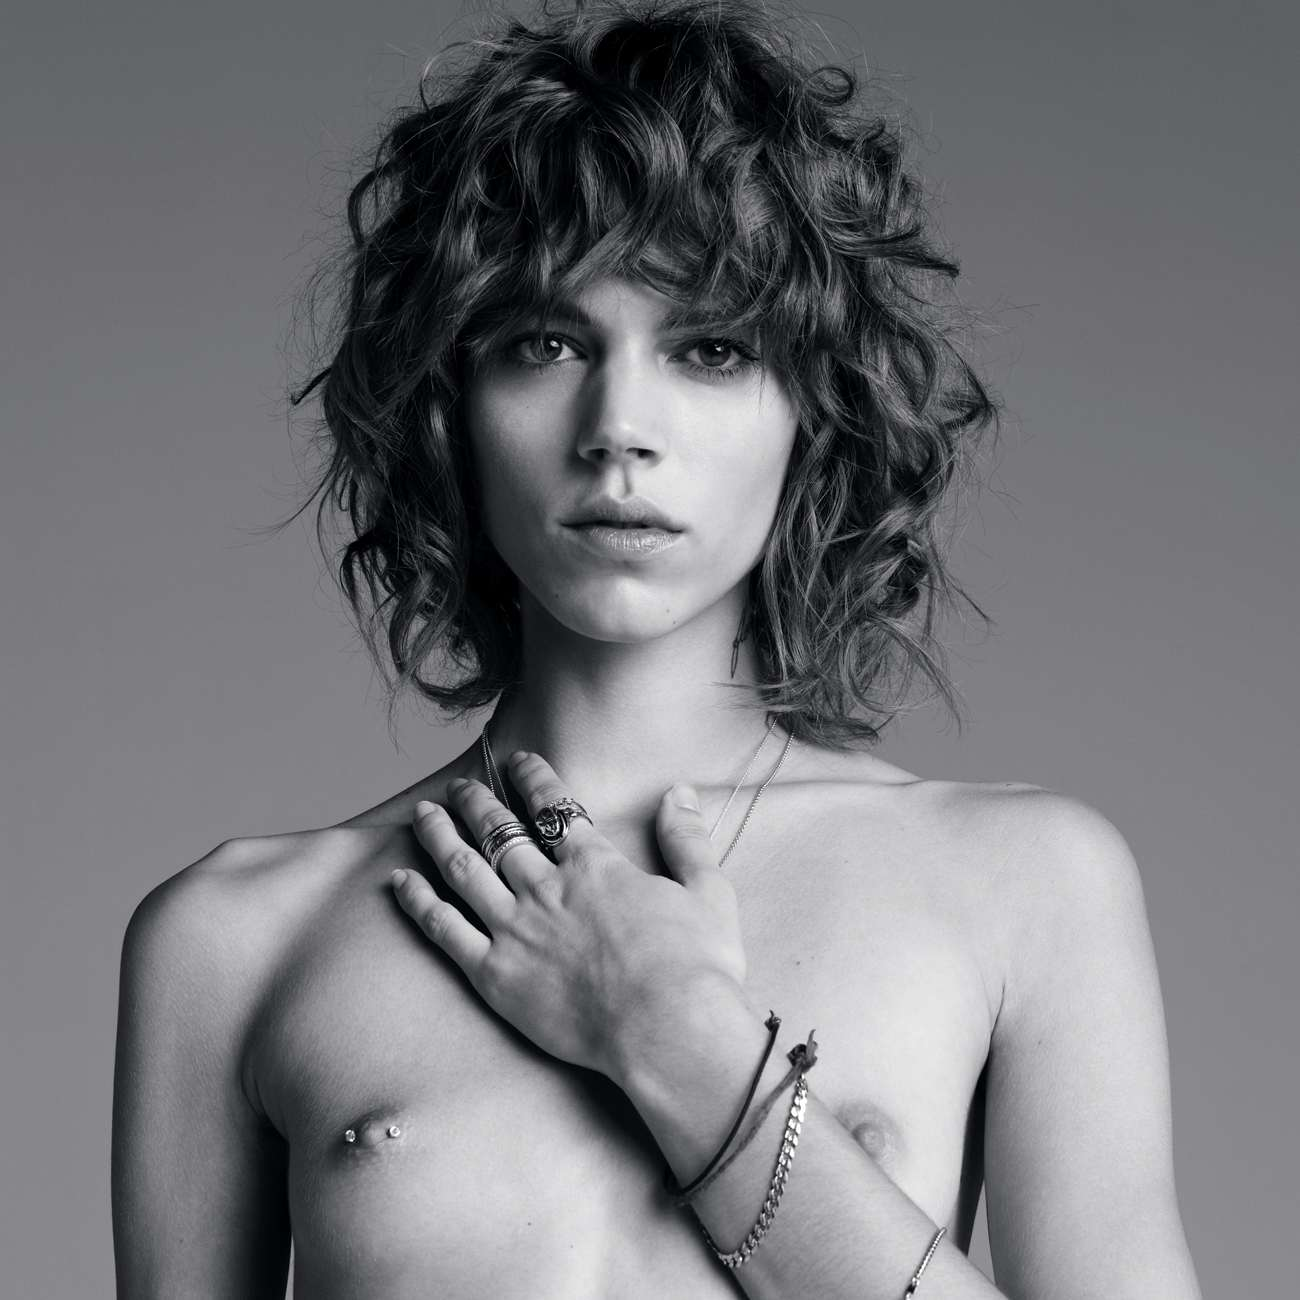 Can not Freja beha erichsen nude consider, that